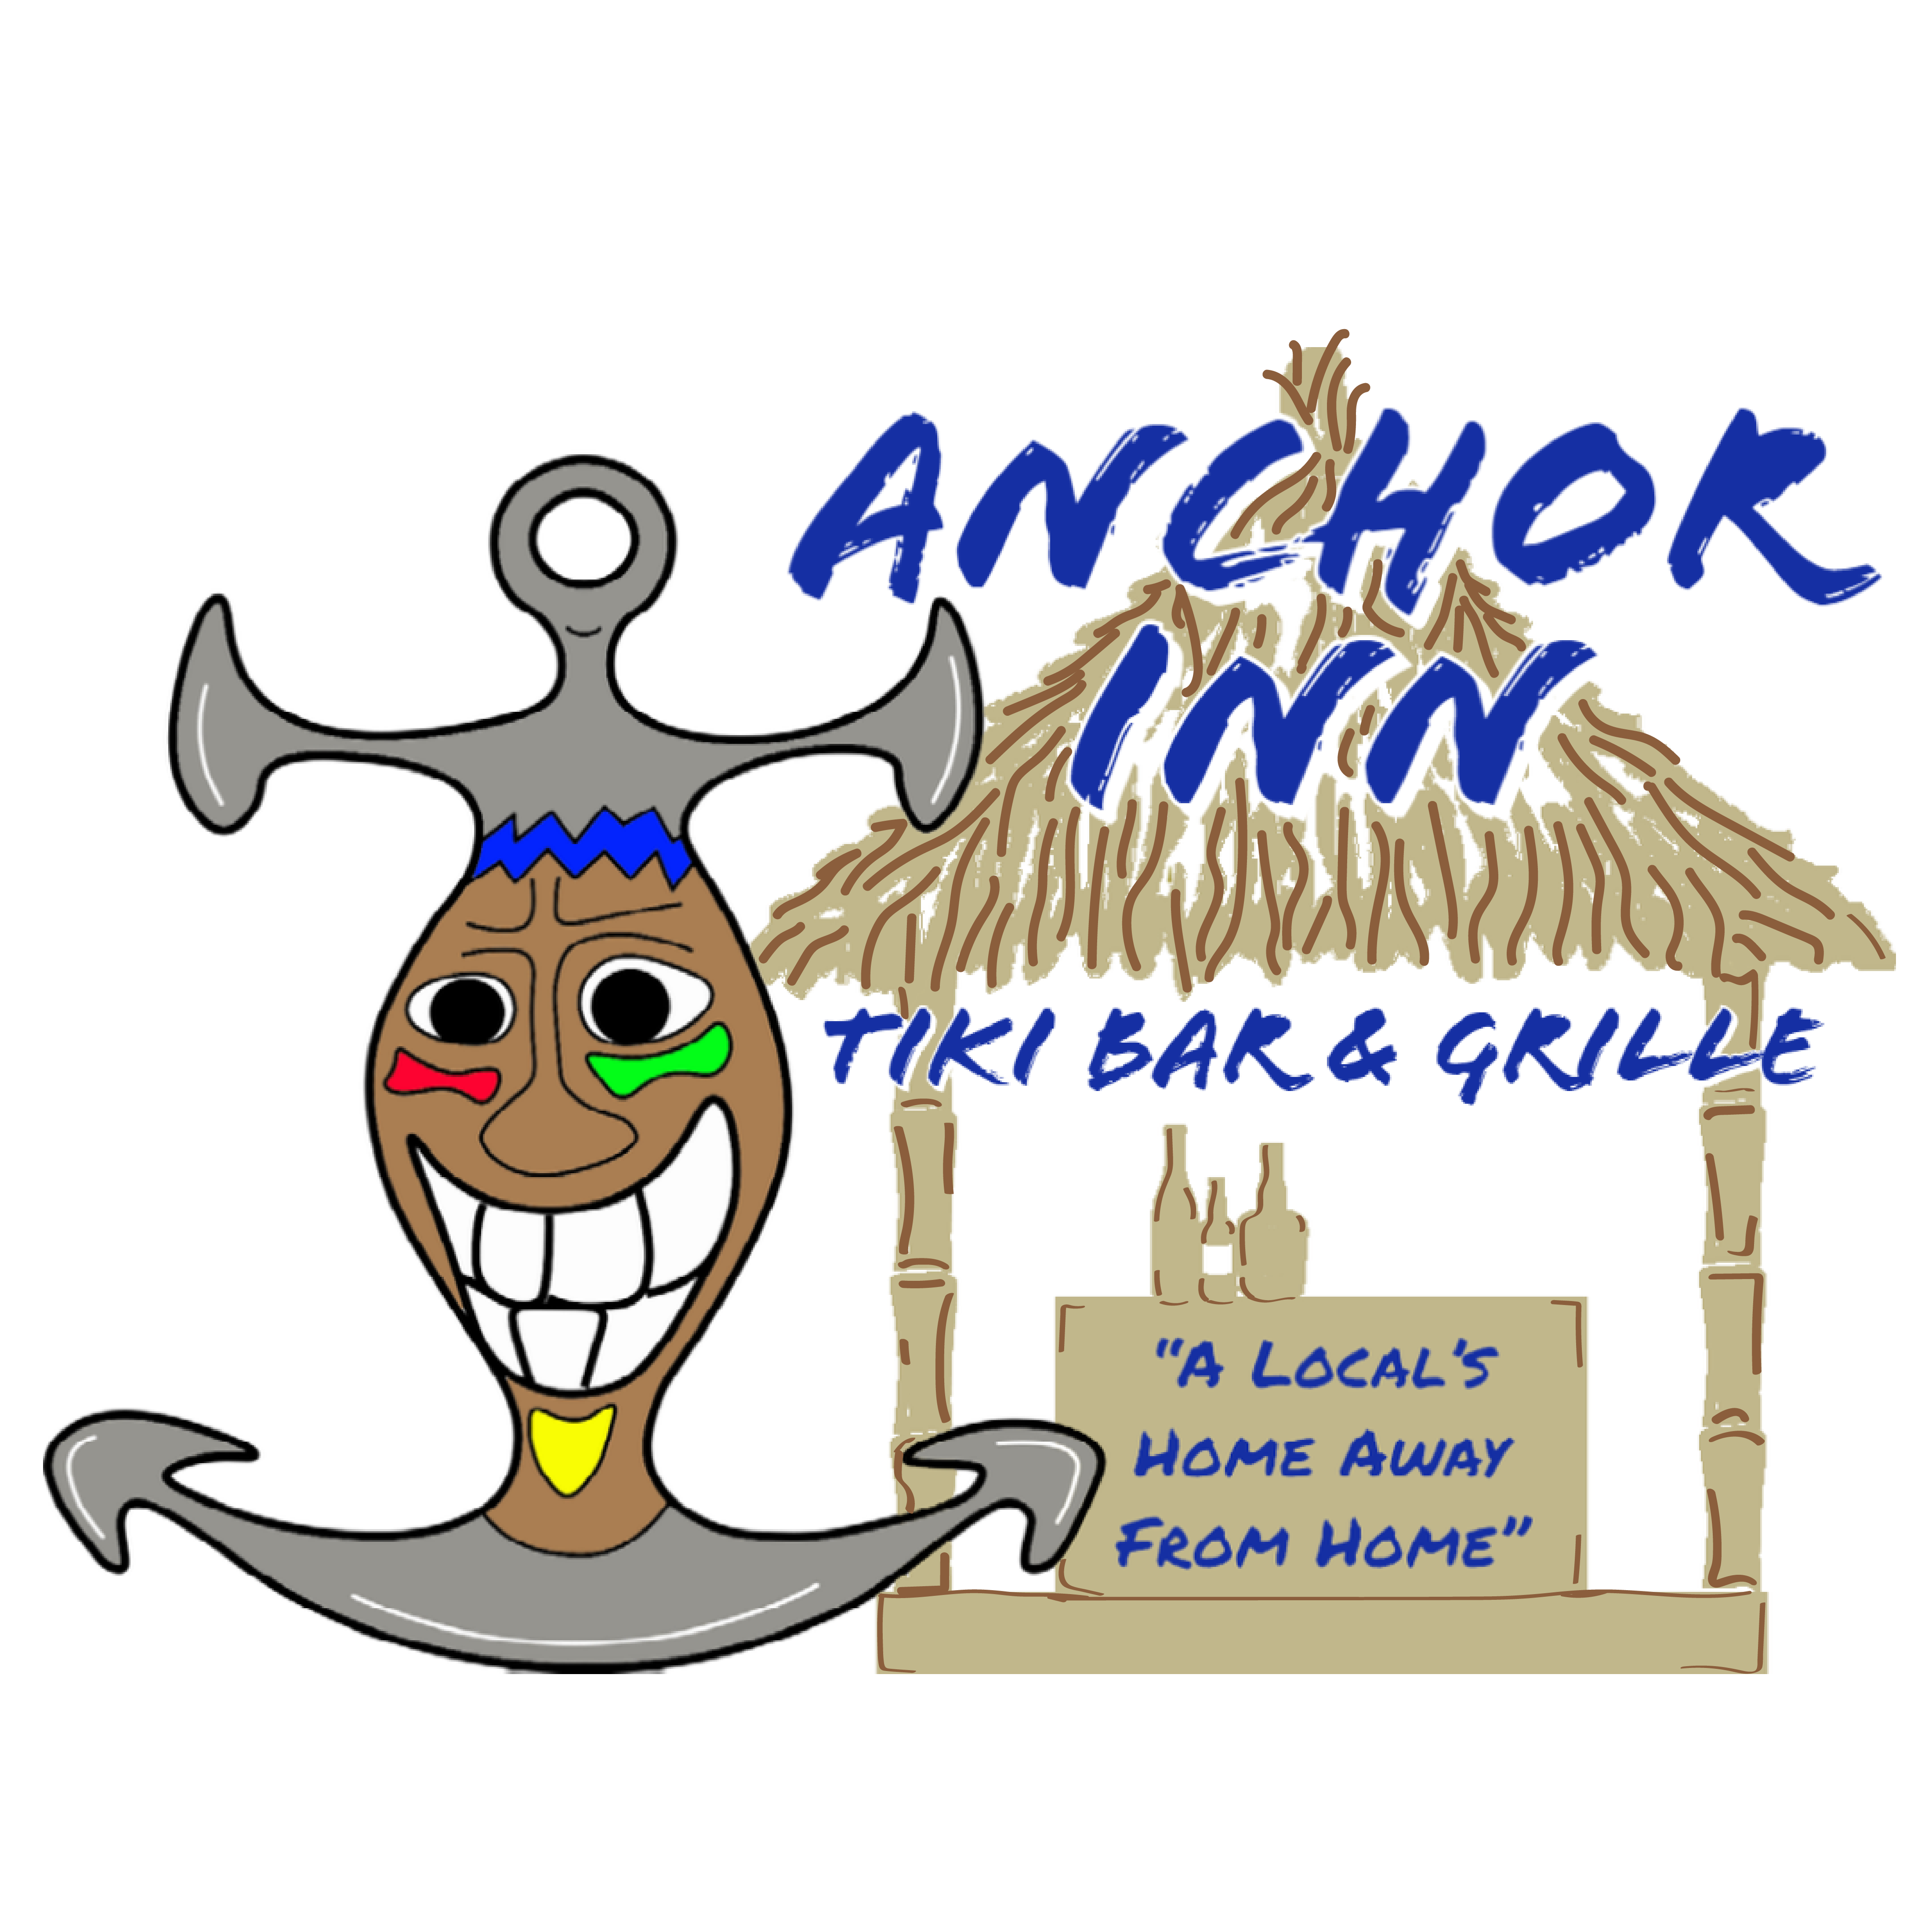 LAKESIDE ANCHOR INN